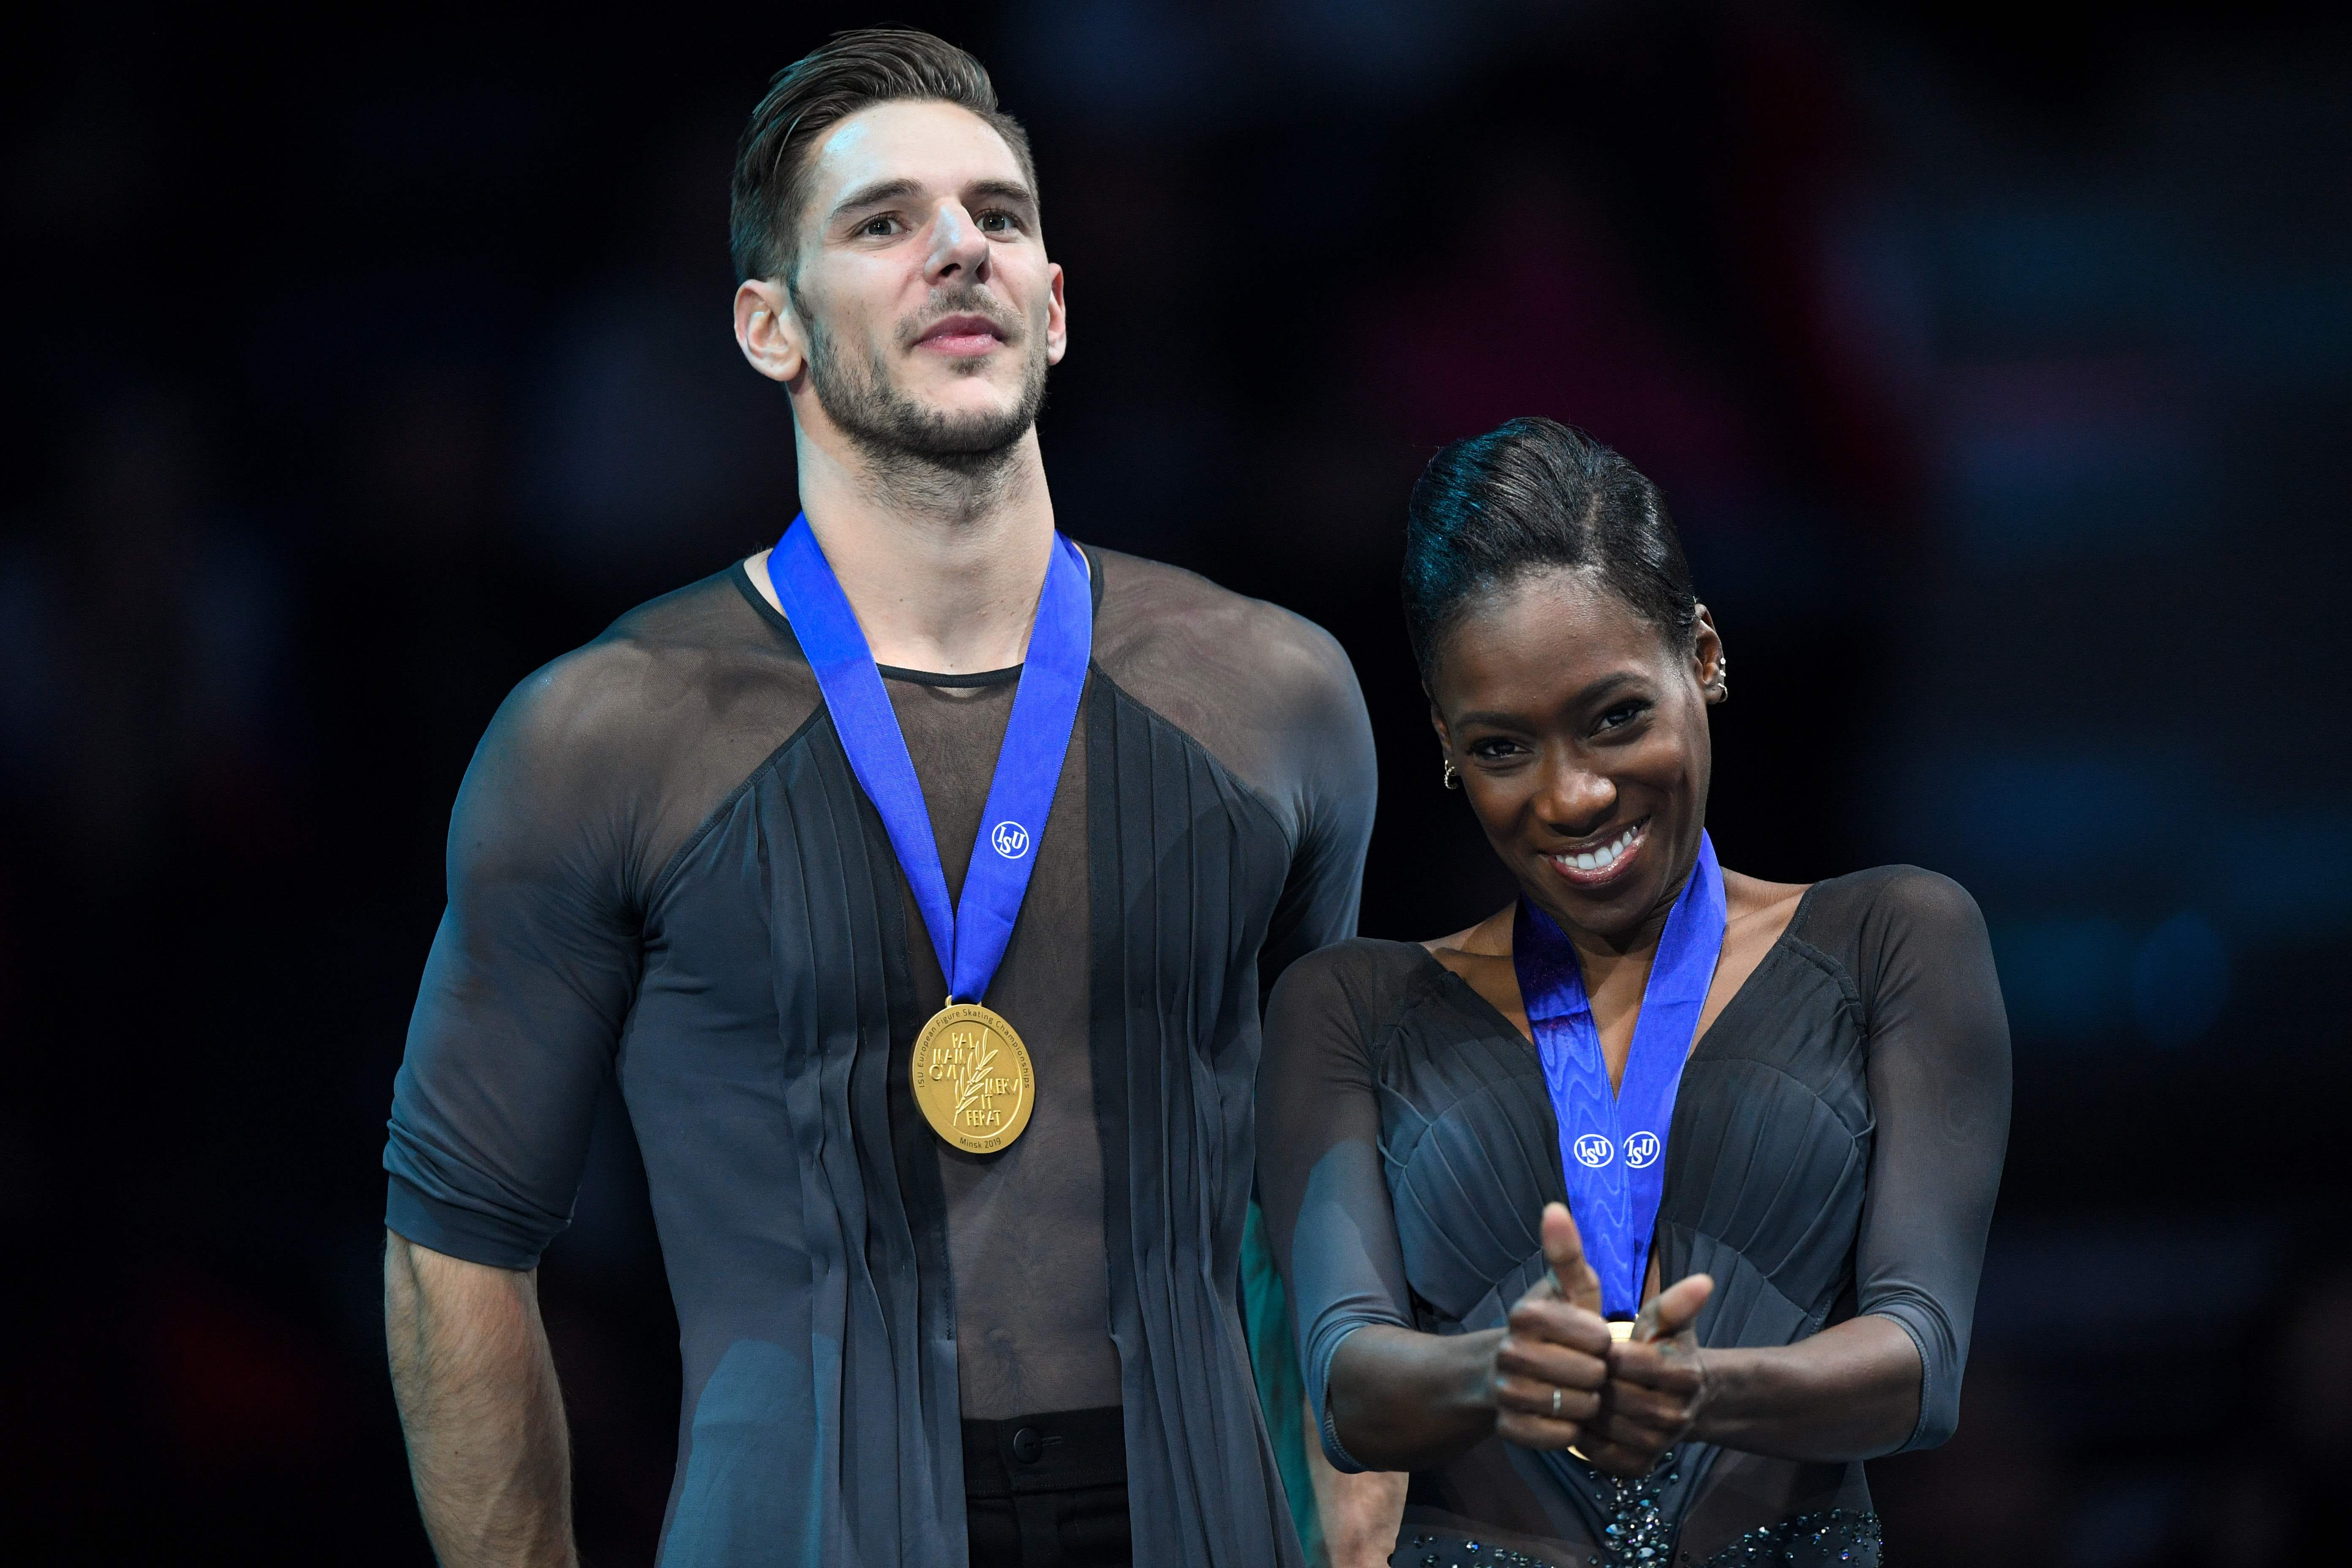 Olympic figure skater under investigation for sexual abuse allegation retires